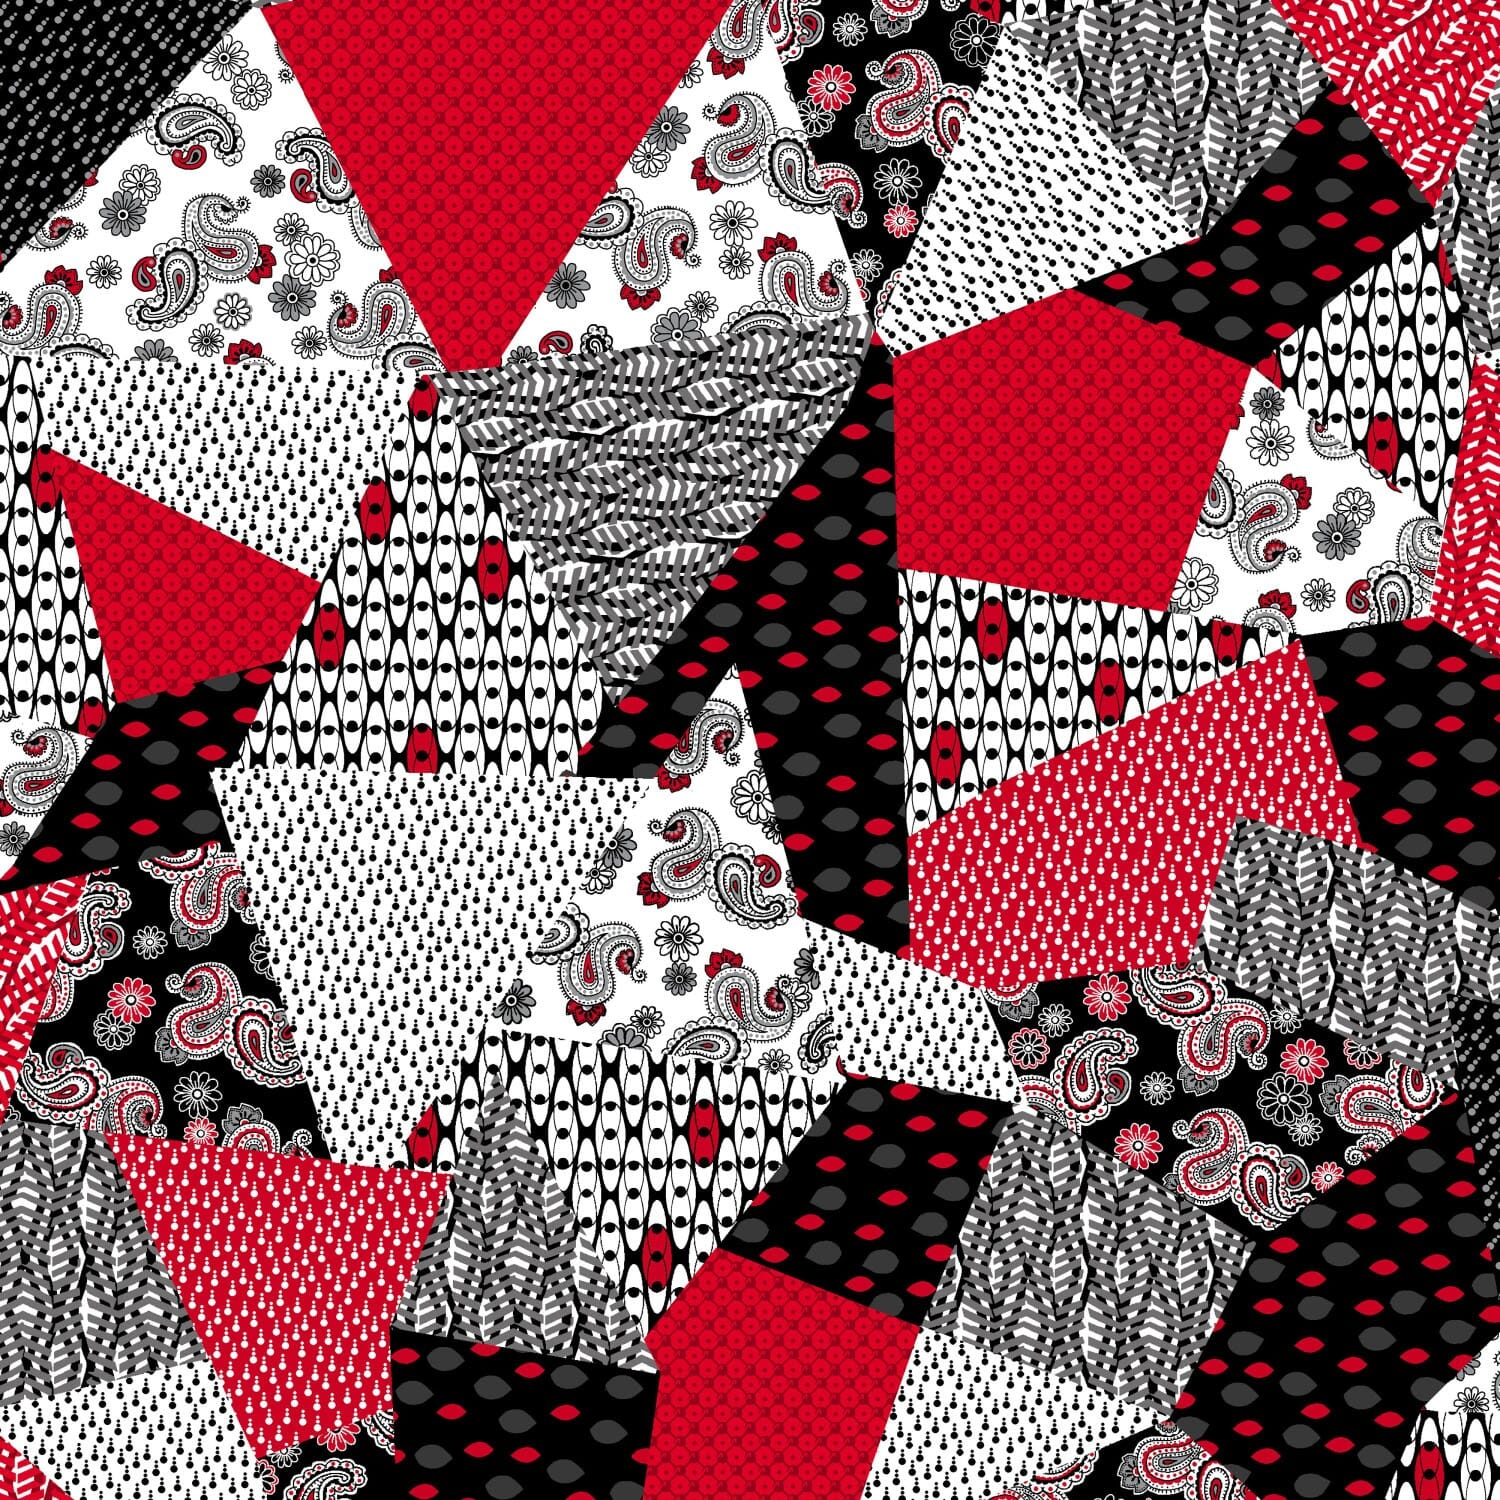 Henry Glass Patchwork Fabric Red Black Patchwork Triangles